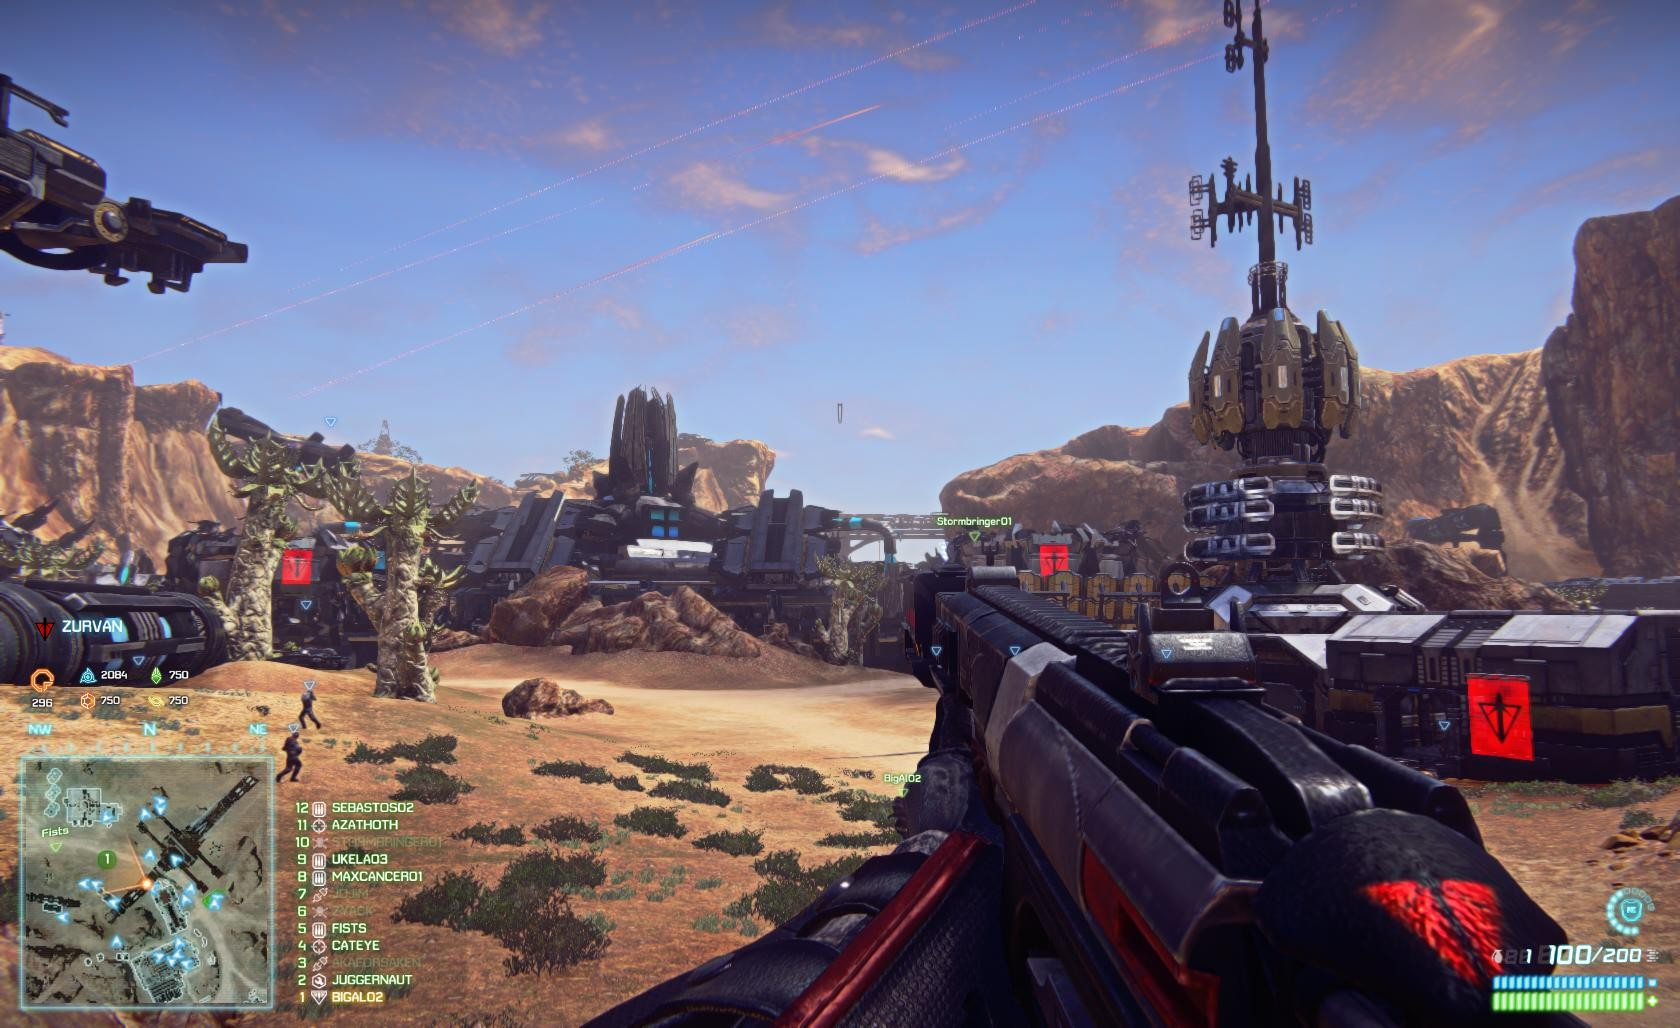 planetside 2 sets new record for simultaneous players